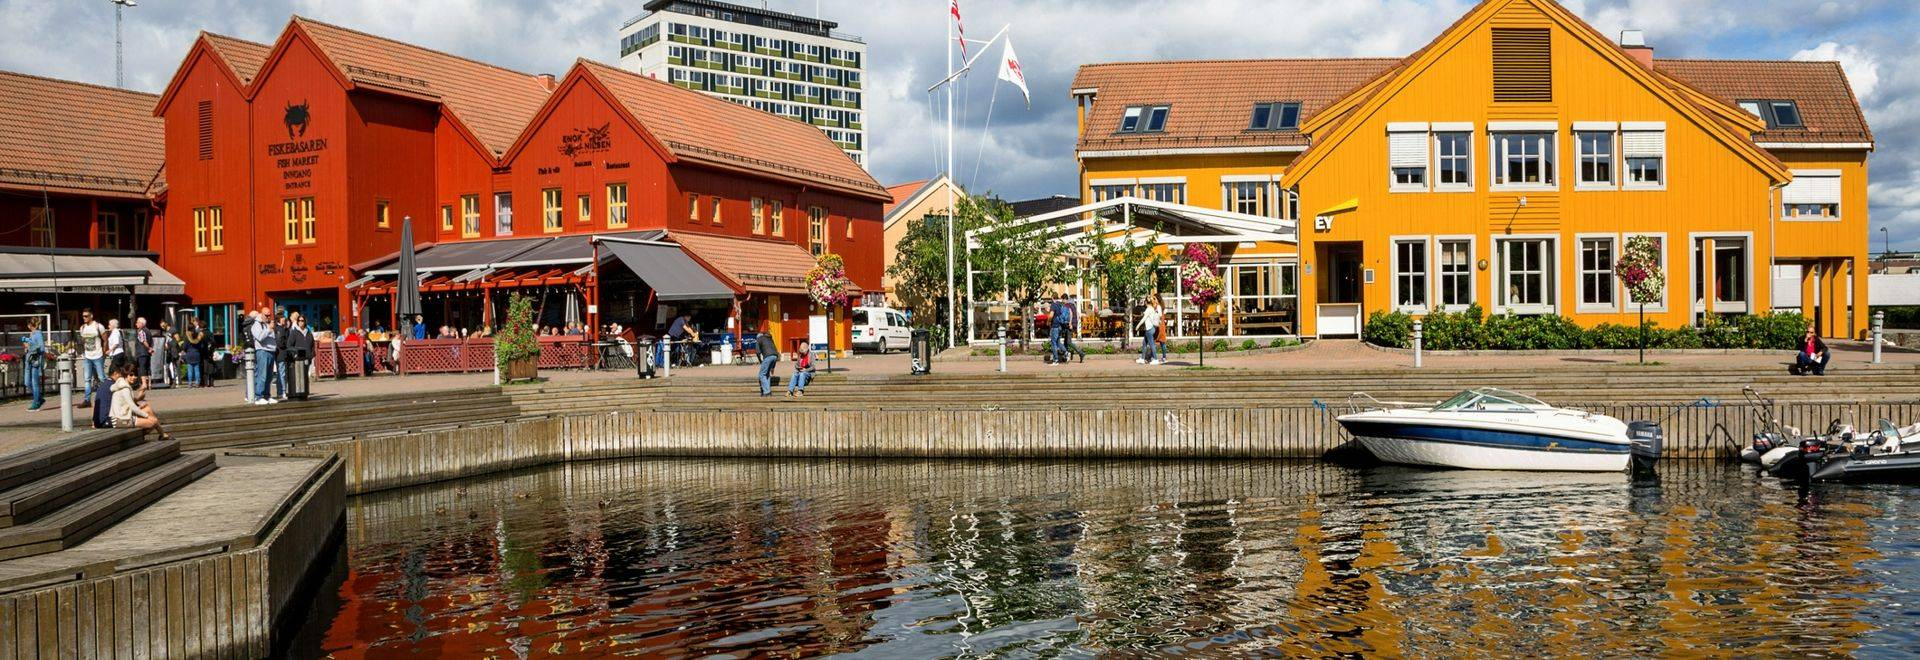 Kristiansand is a city, municipality and the county capital of Vest-Agder county in Southern Norway. Fiskebrygga (The Fish W…